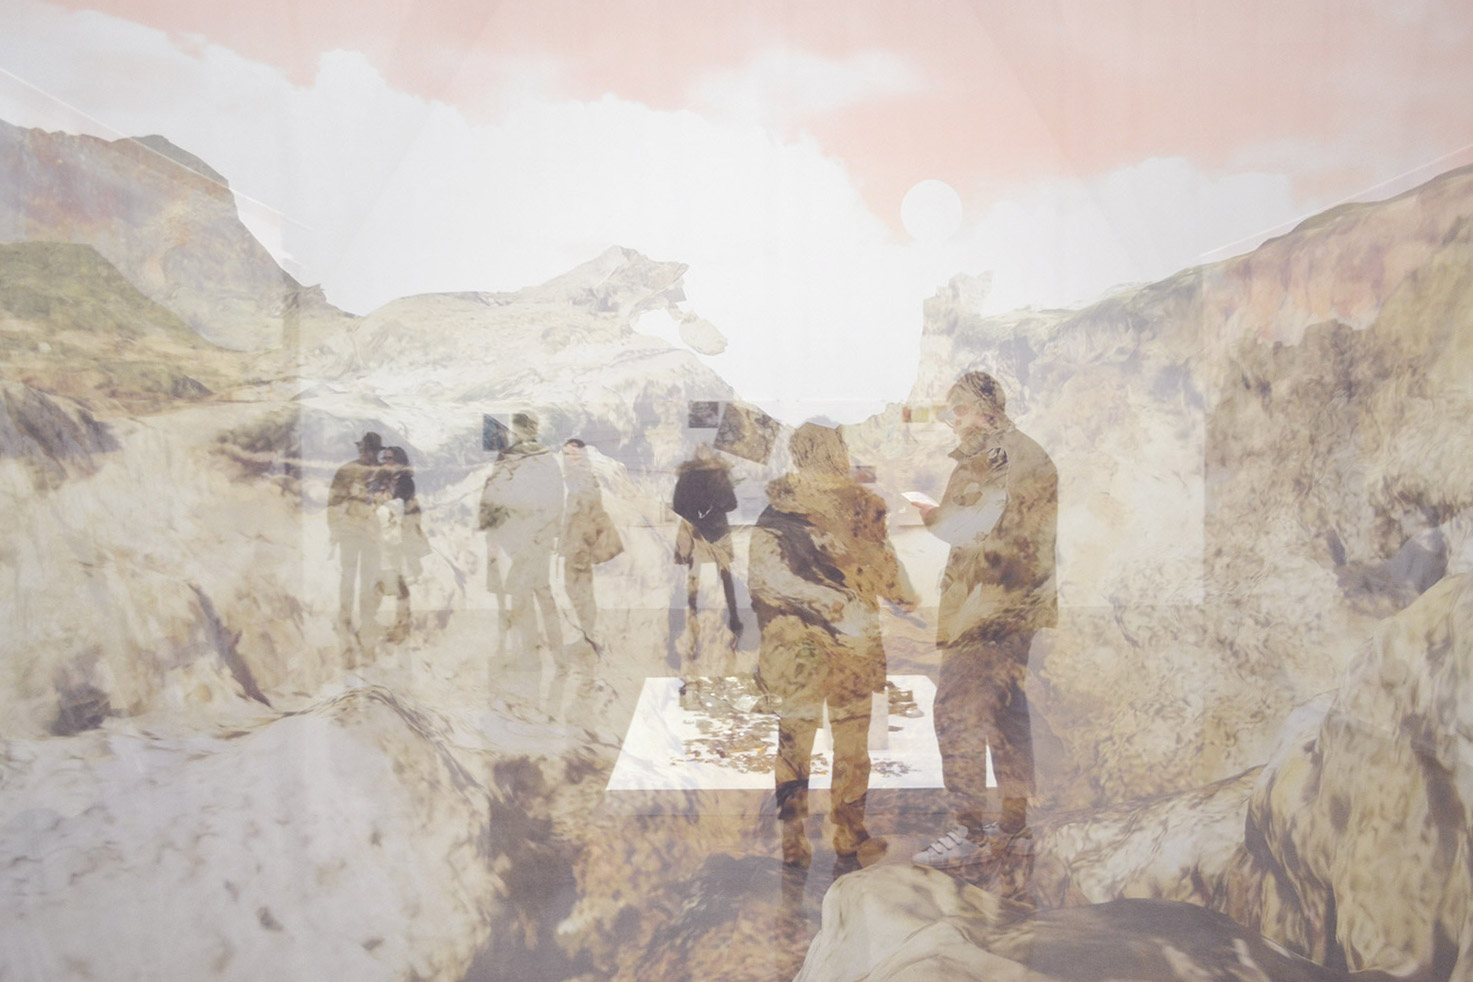 Visitors take in an exhibition viewed through a transparent fabric print of mountains with a pink sky.